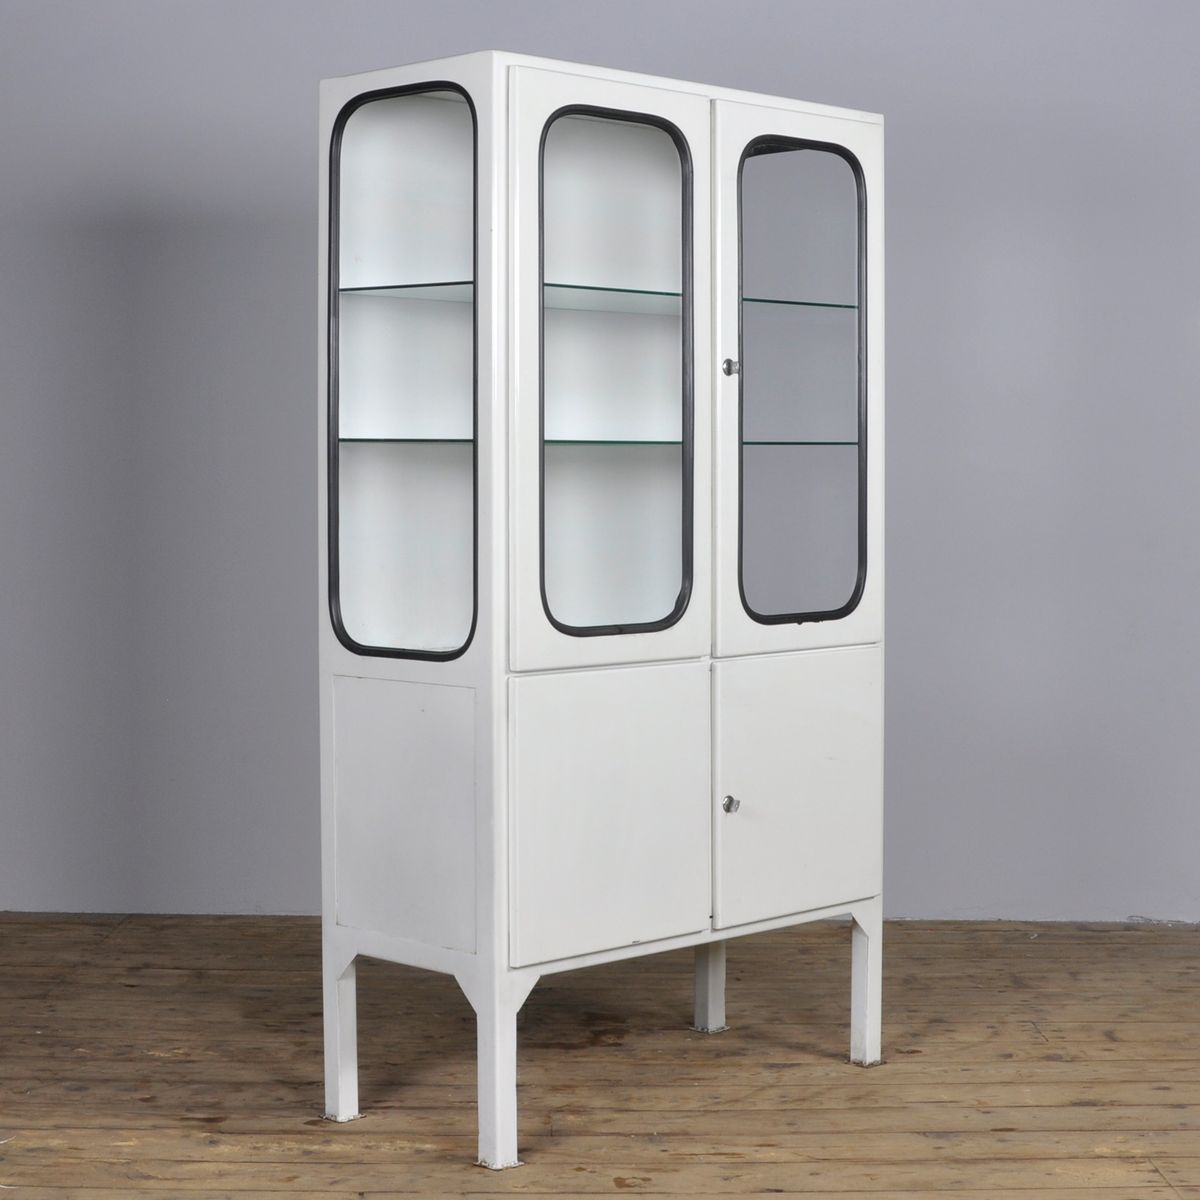 armoire pharmacie vintage en verre en fer forg 1970s en vente sur pamono. Black Bedroom Furniture Sets. Home Design Ideas